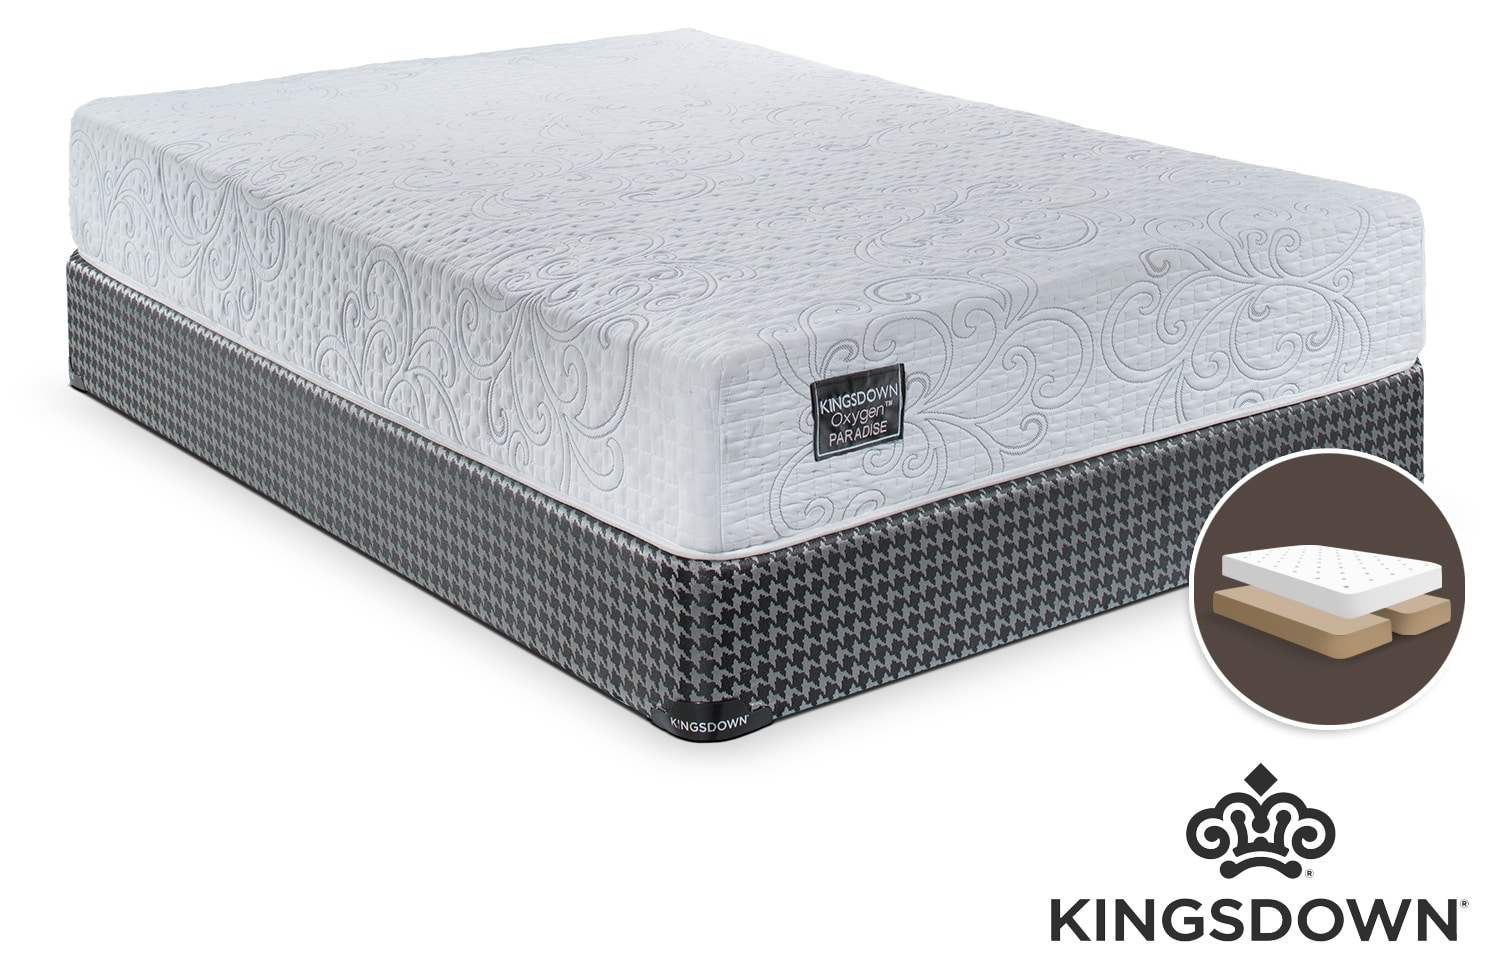 Kingsdown Celestial King Mattress/Boxspring Set